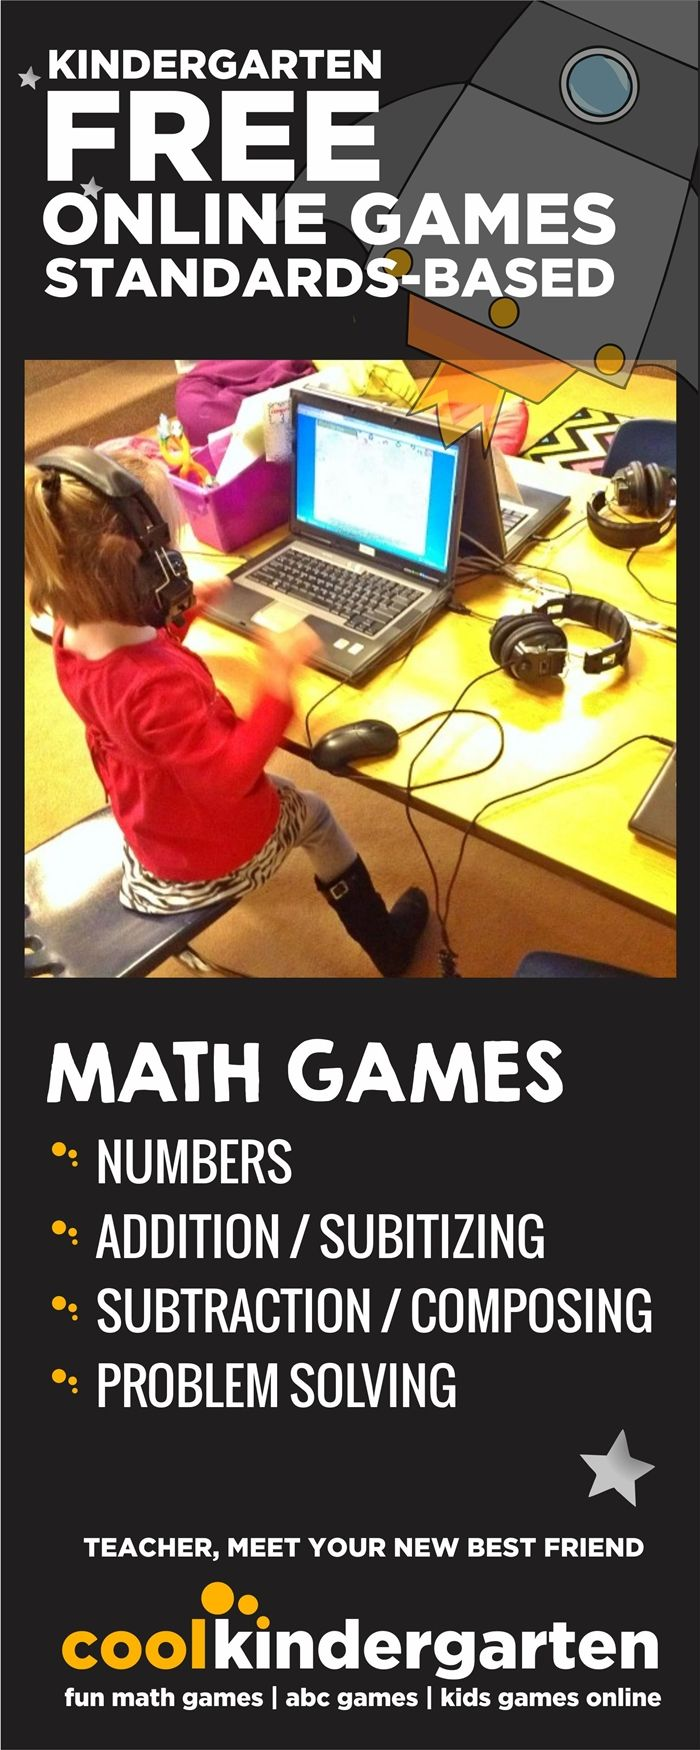 Cool math games for kindergarten - free online | Technology for ...